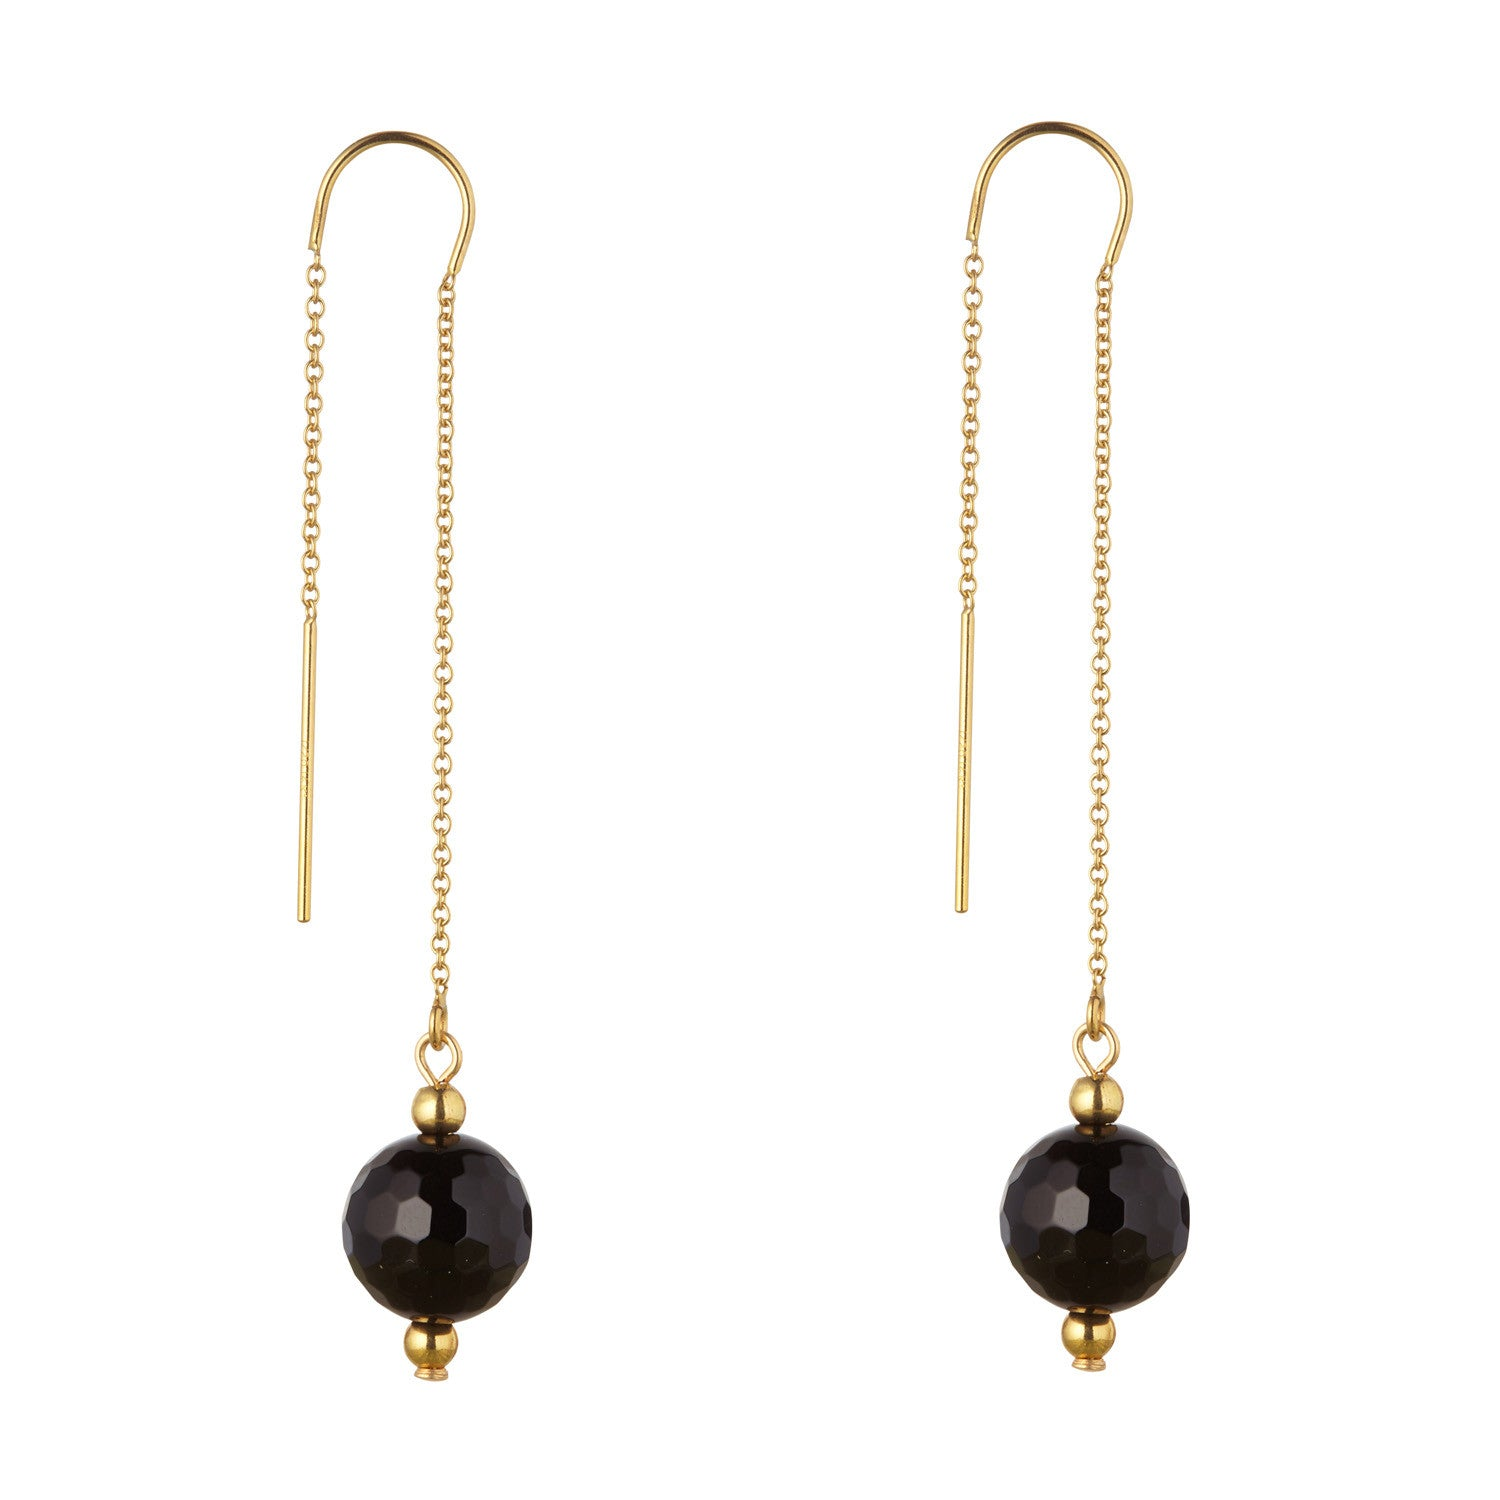 14kt Gold Filled Black Onyx Threaders Earrings - MoMuse Jewellery